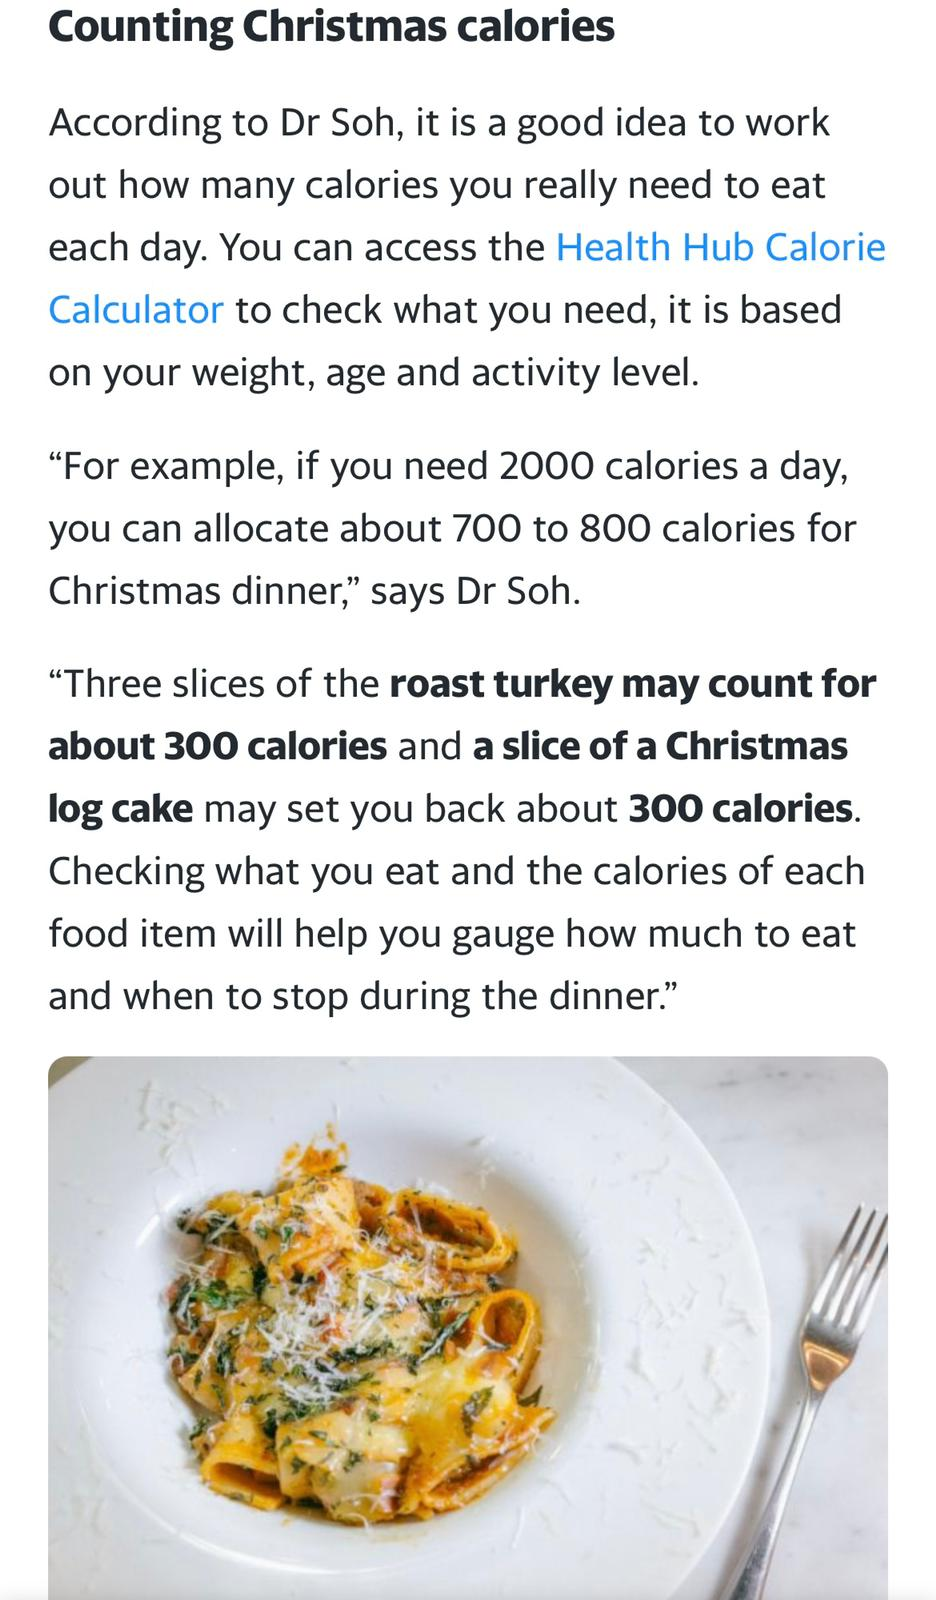 Christmas calorie counting